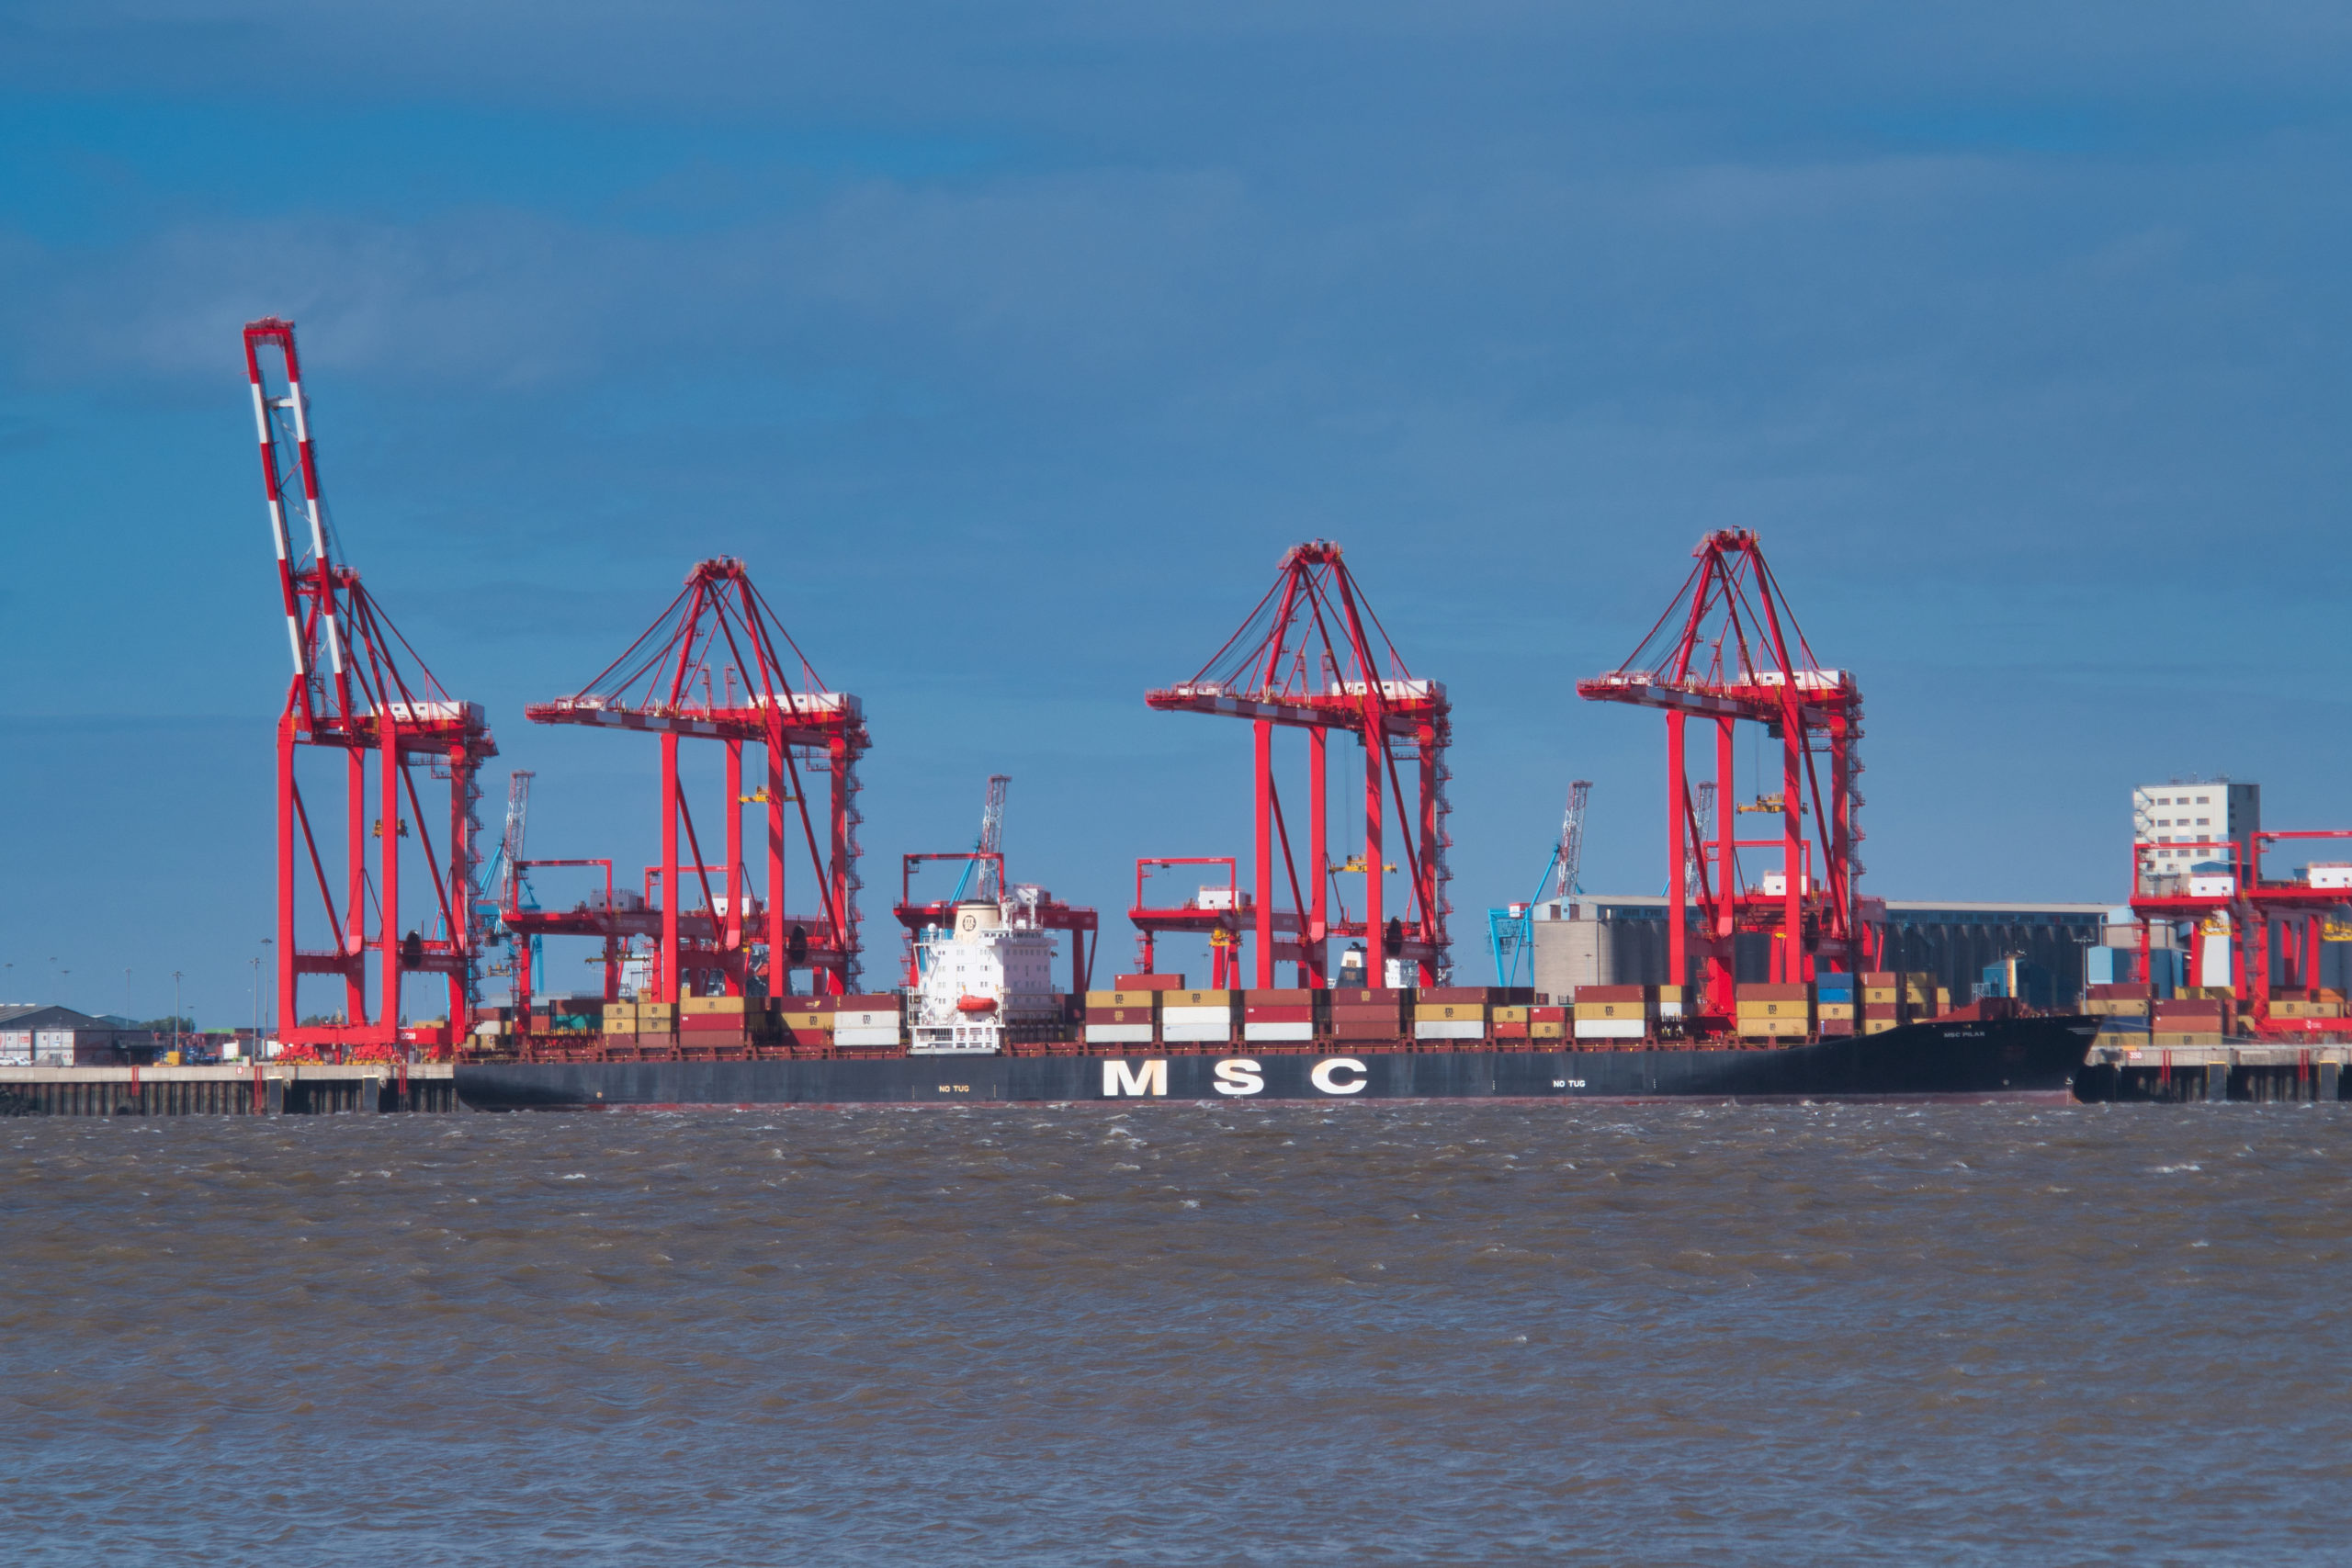 Panama registered container ship MSC Pilar at berth at Liverpool2 - a £400 million deep-water container terminal at the Port of Liverpool, taken on a clear, sunny day